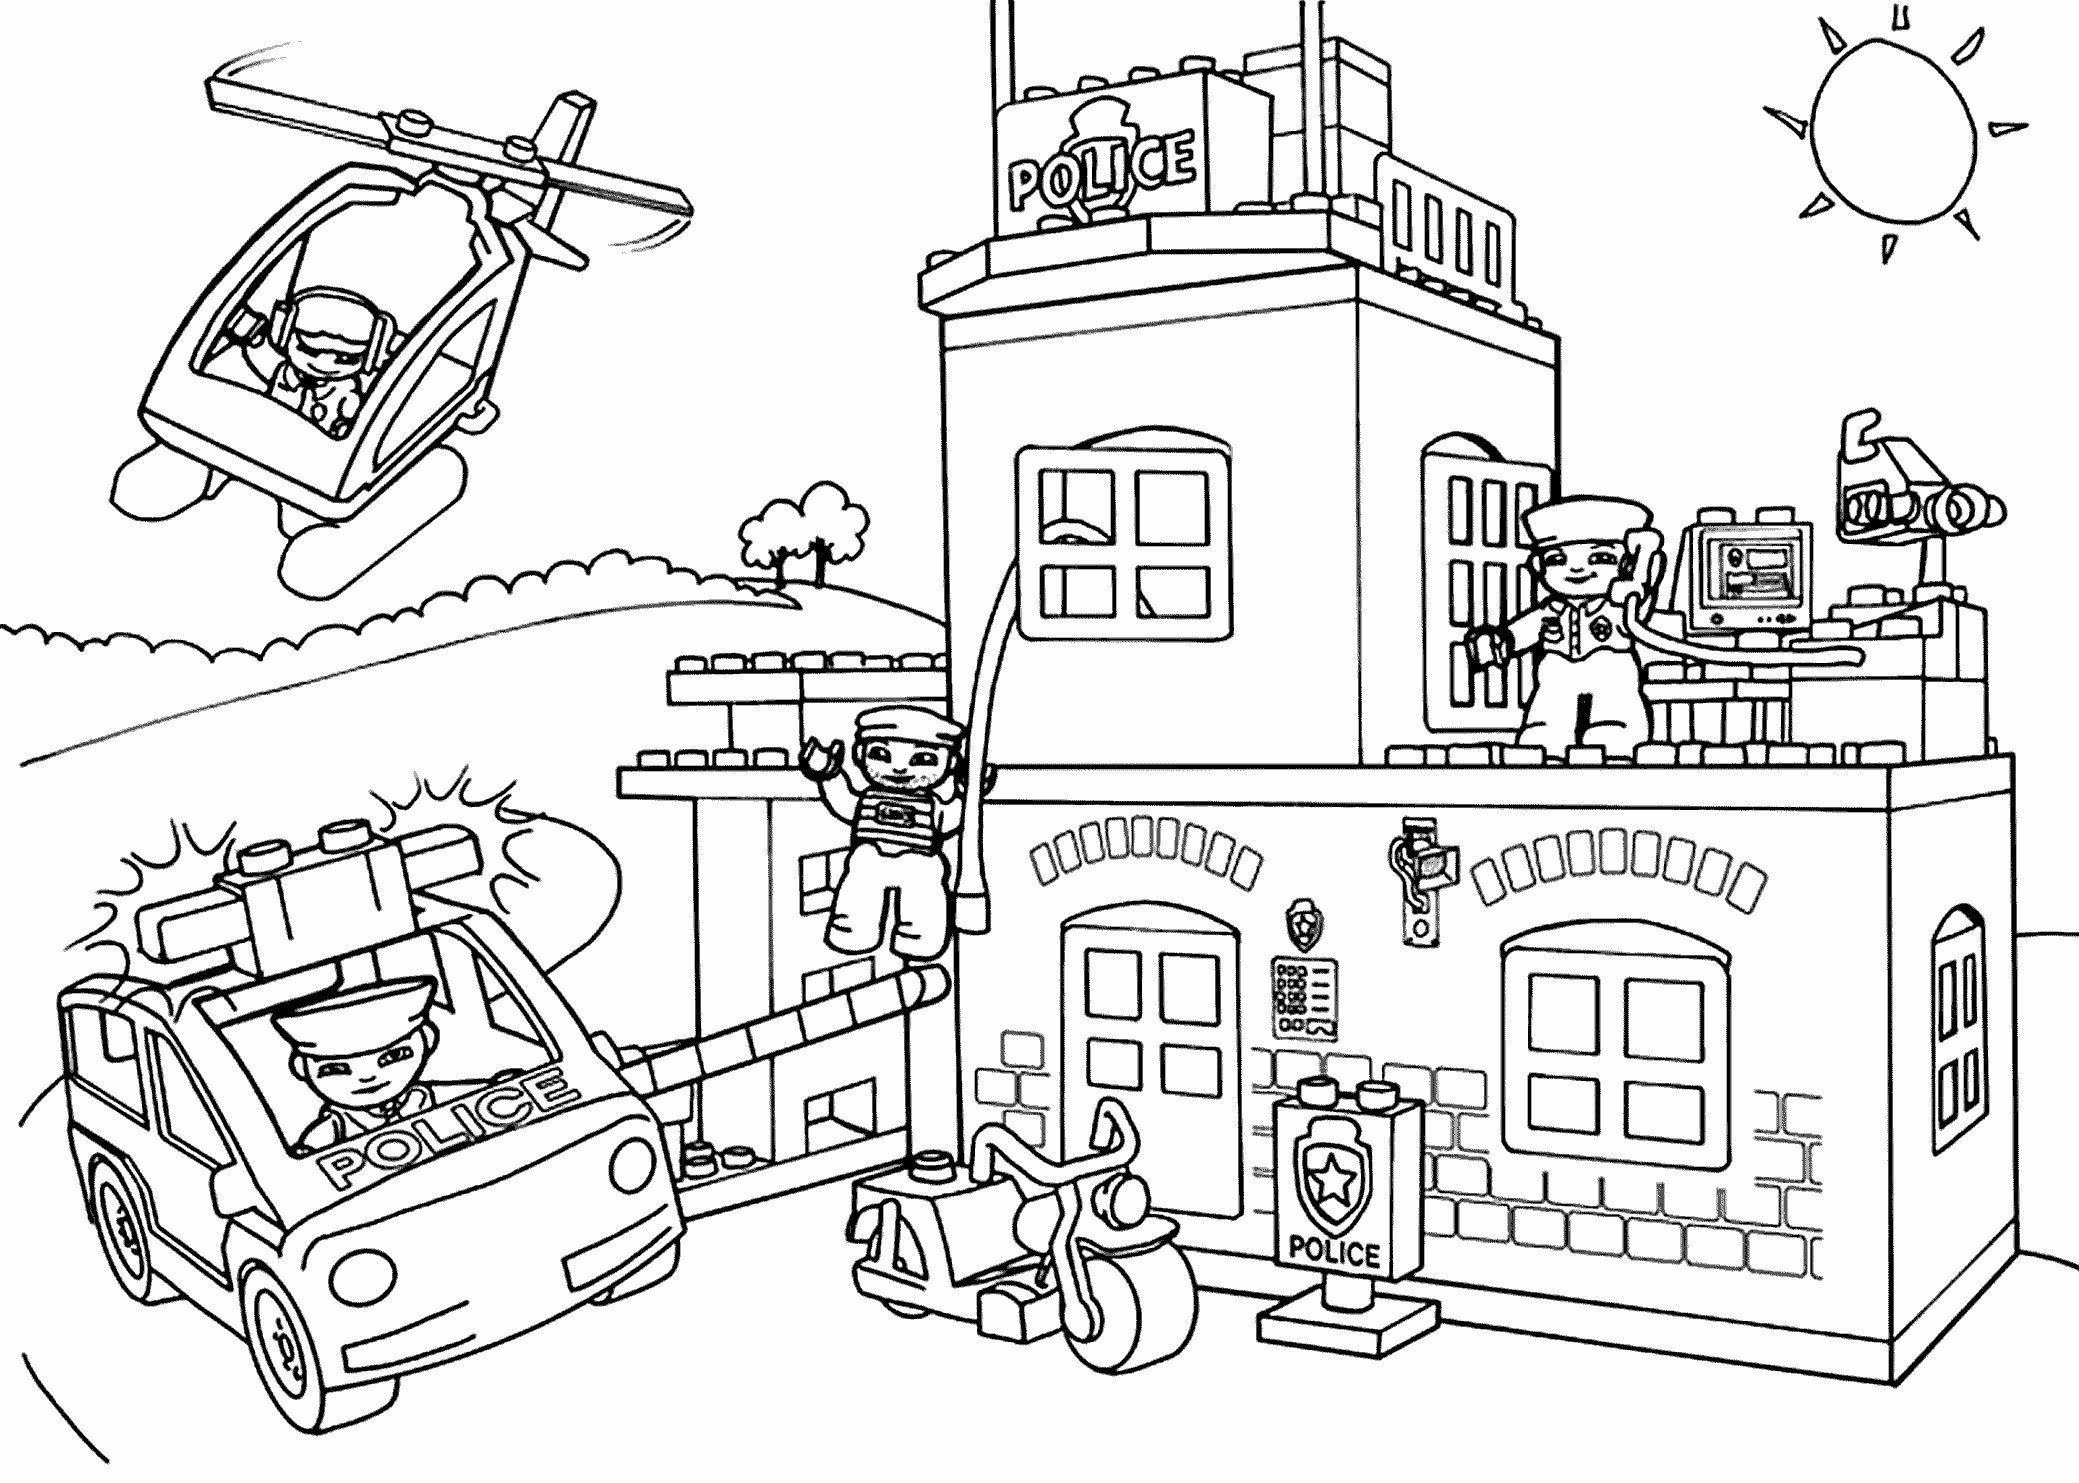 Lego City Coloring Pages Elegant Lego City Coloring Pages Lego Coloring Pages Lego Coloring Lego Police